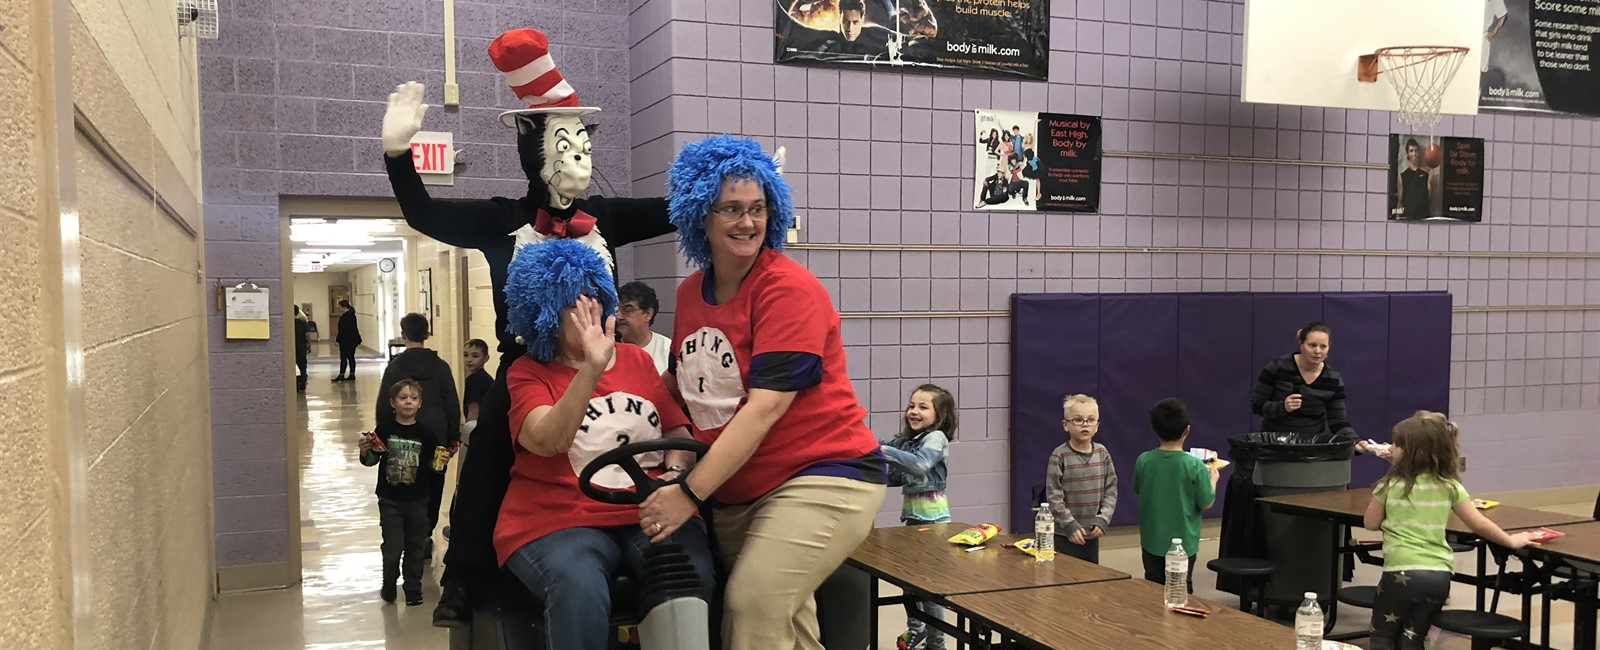 The Cat in the Hat, Thing 1, and Thing 2 visited B.L. Miller Elementary School to celebrate Dr. Seuss' birthday.